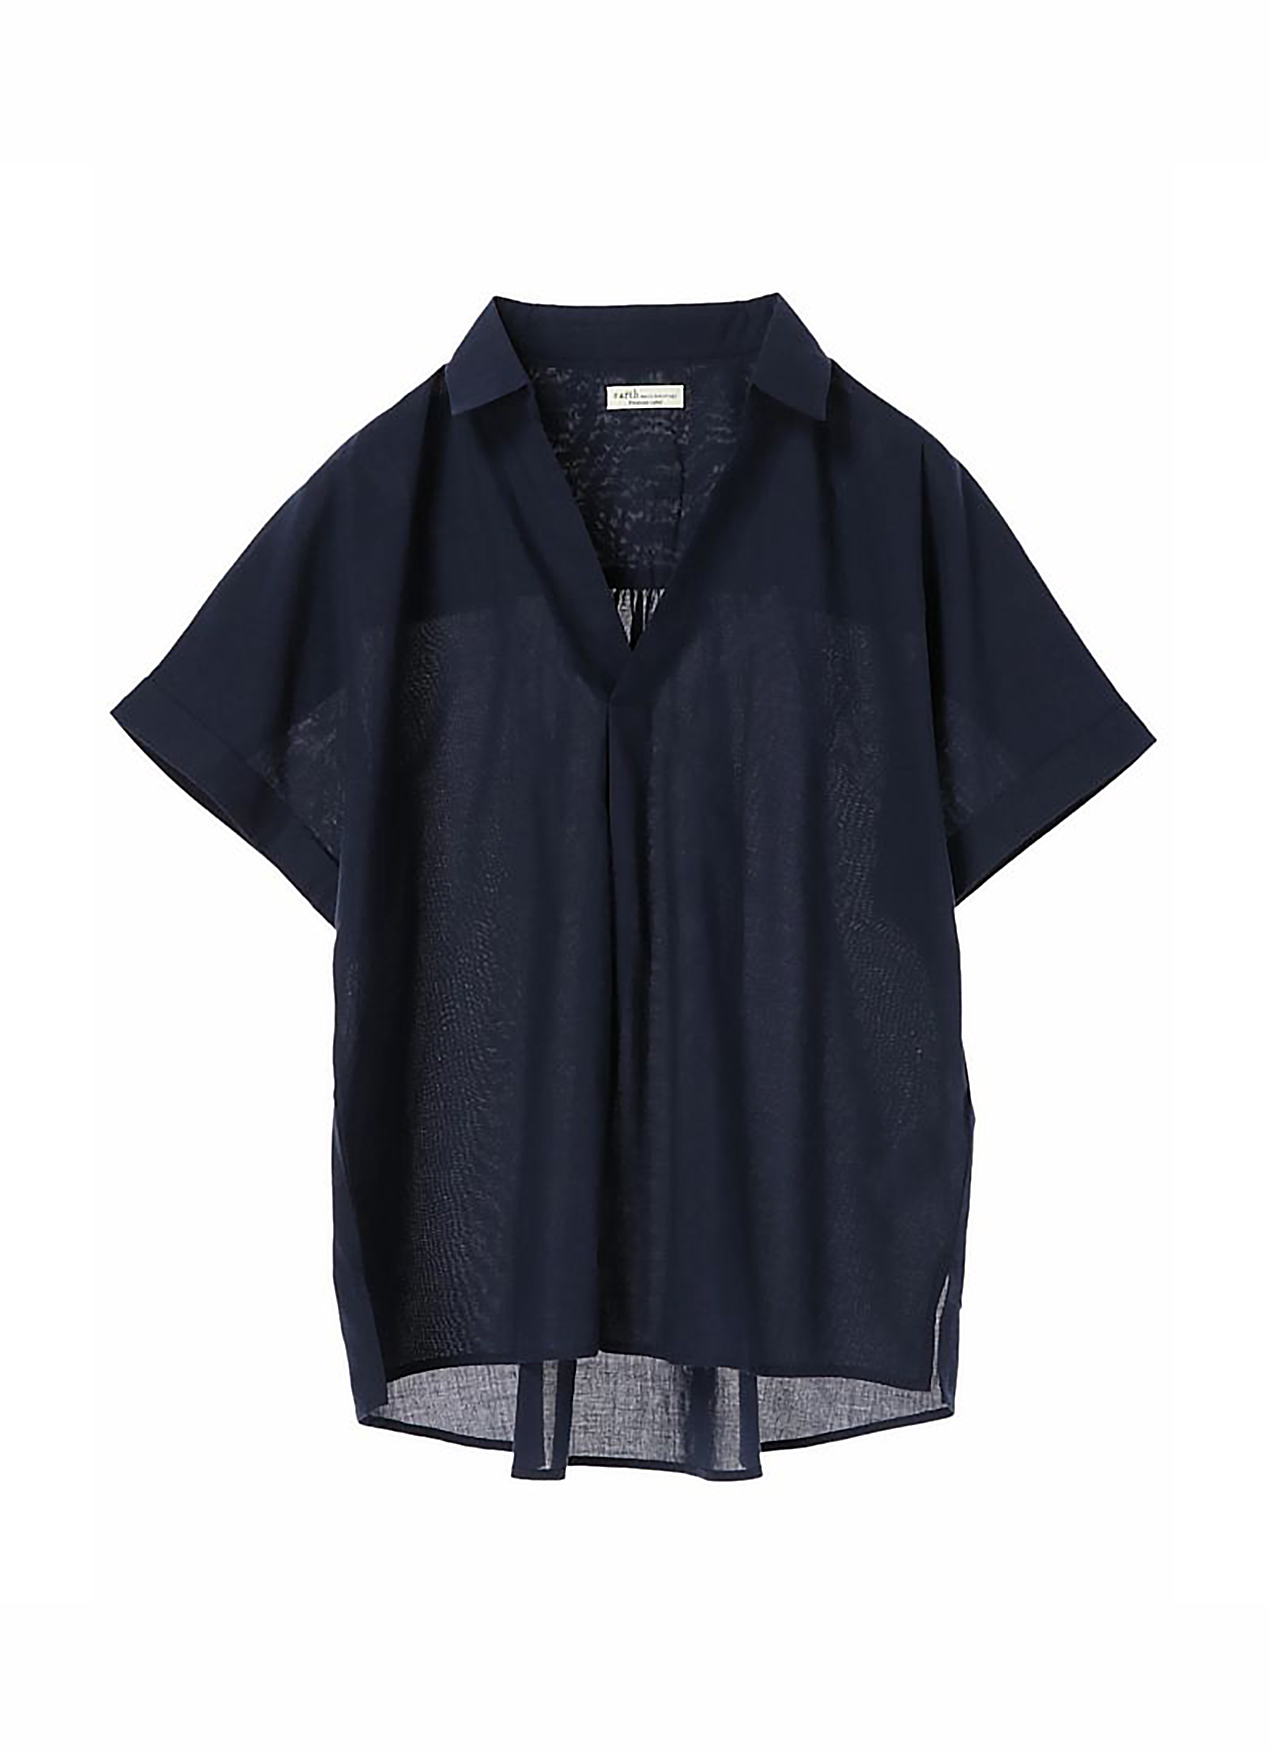 Earth, Music & Ecology Sanae Top - Navy